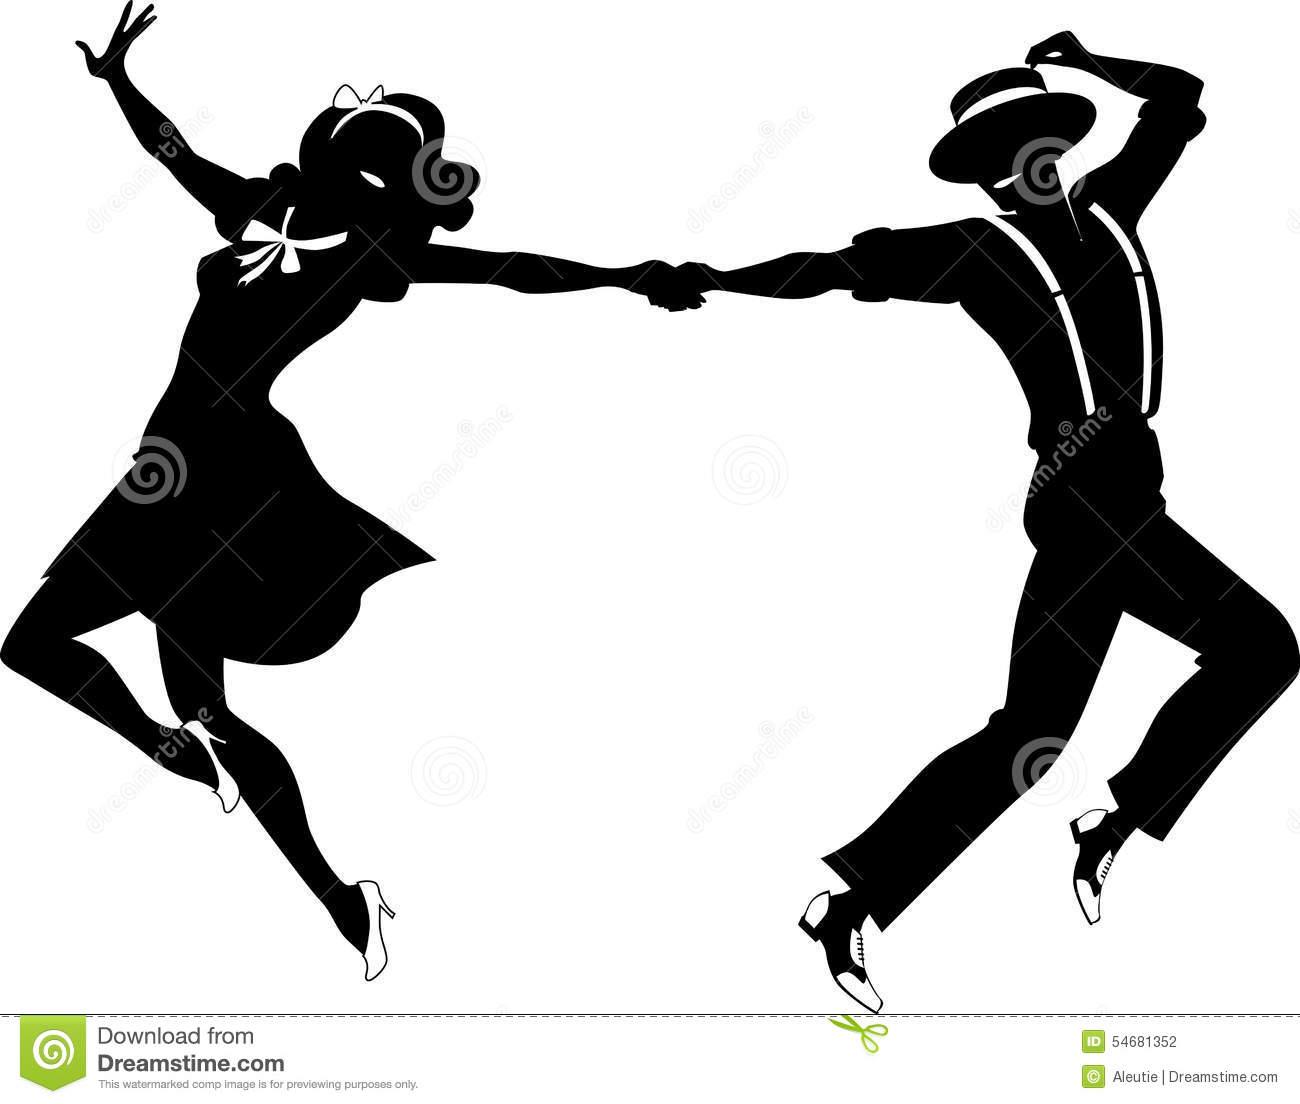 Silhouette Couple Dancing Black Vector Swing Tap Dance No White Objects Eps on 1940s Jitterbug Dance